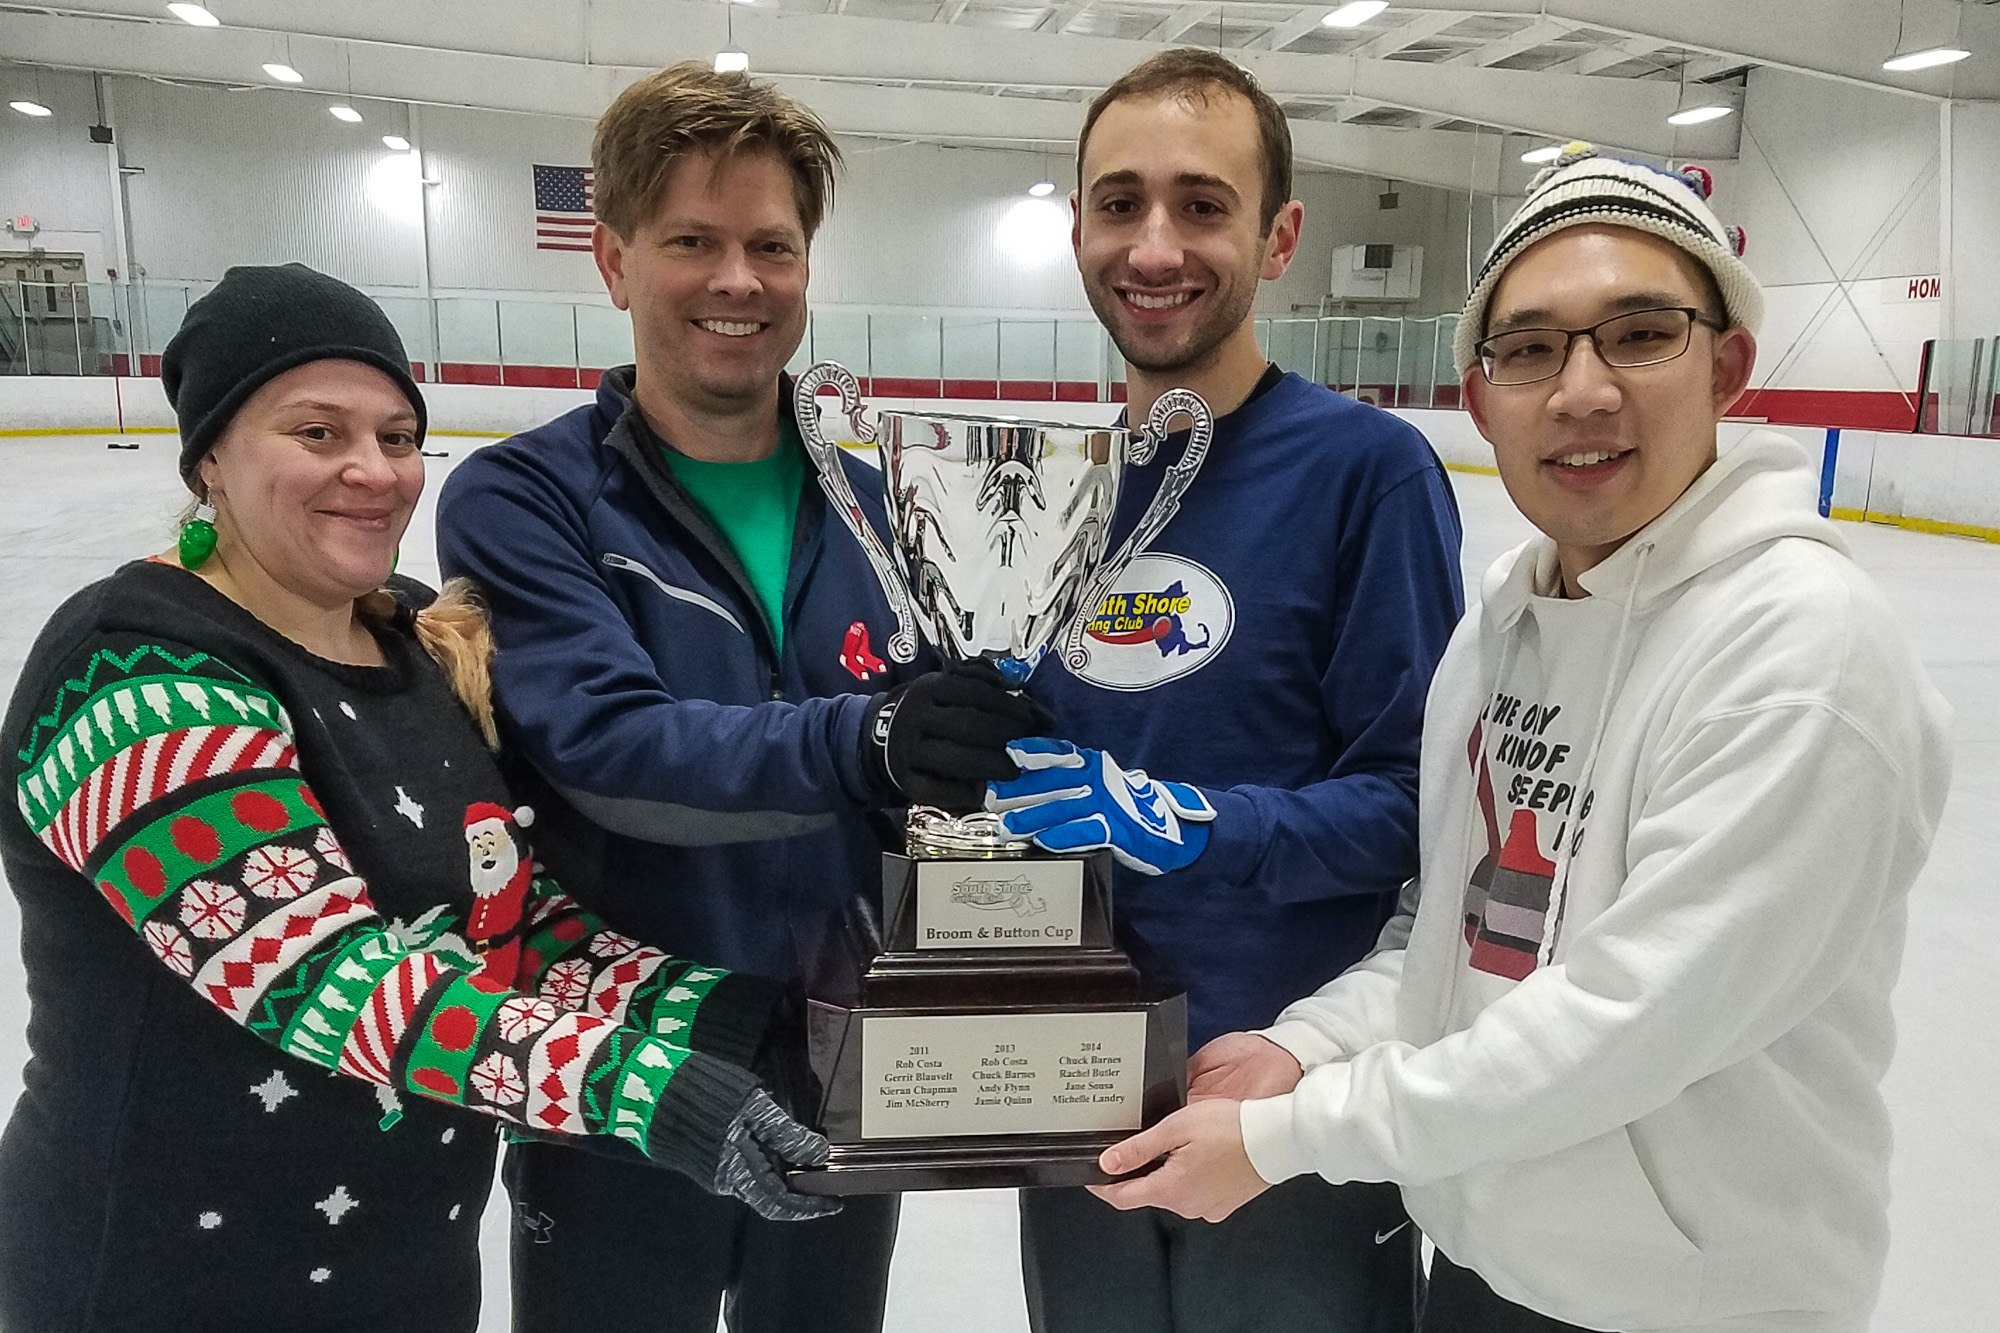 2017 Broom & Button Cup Finals